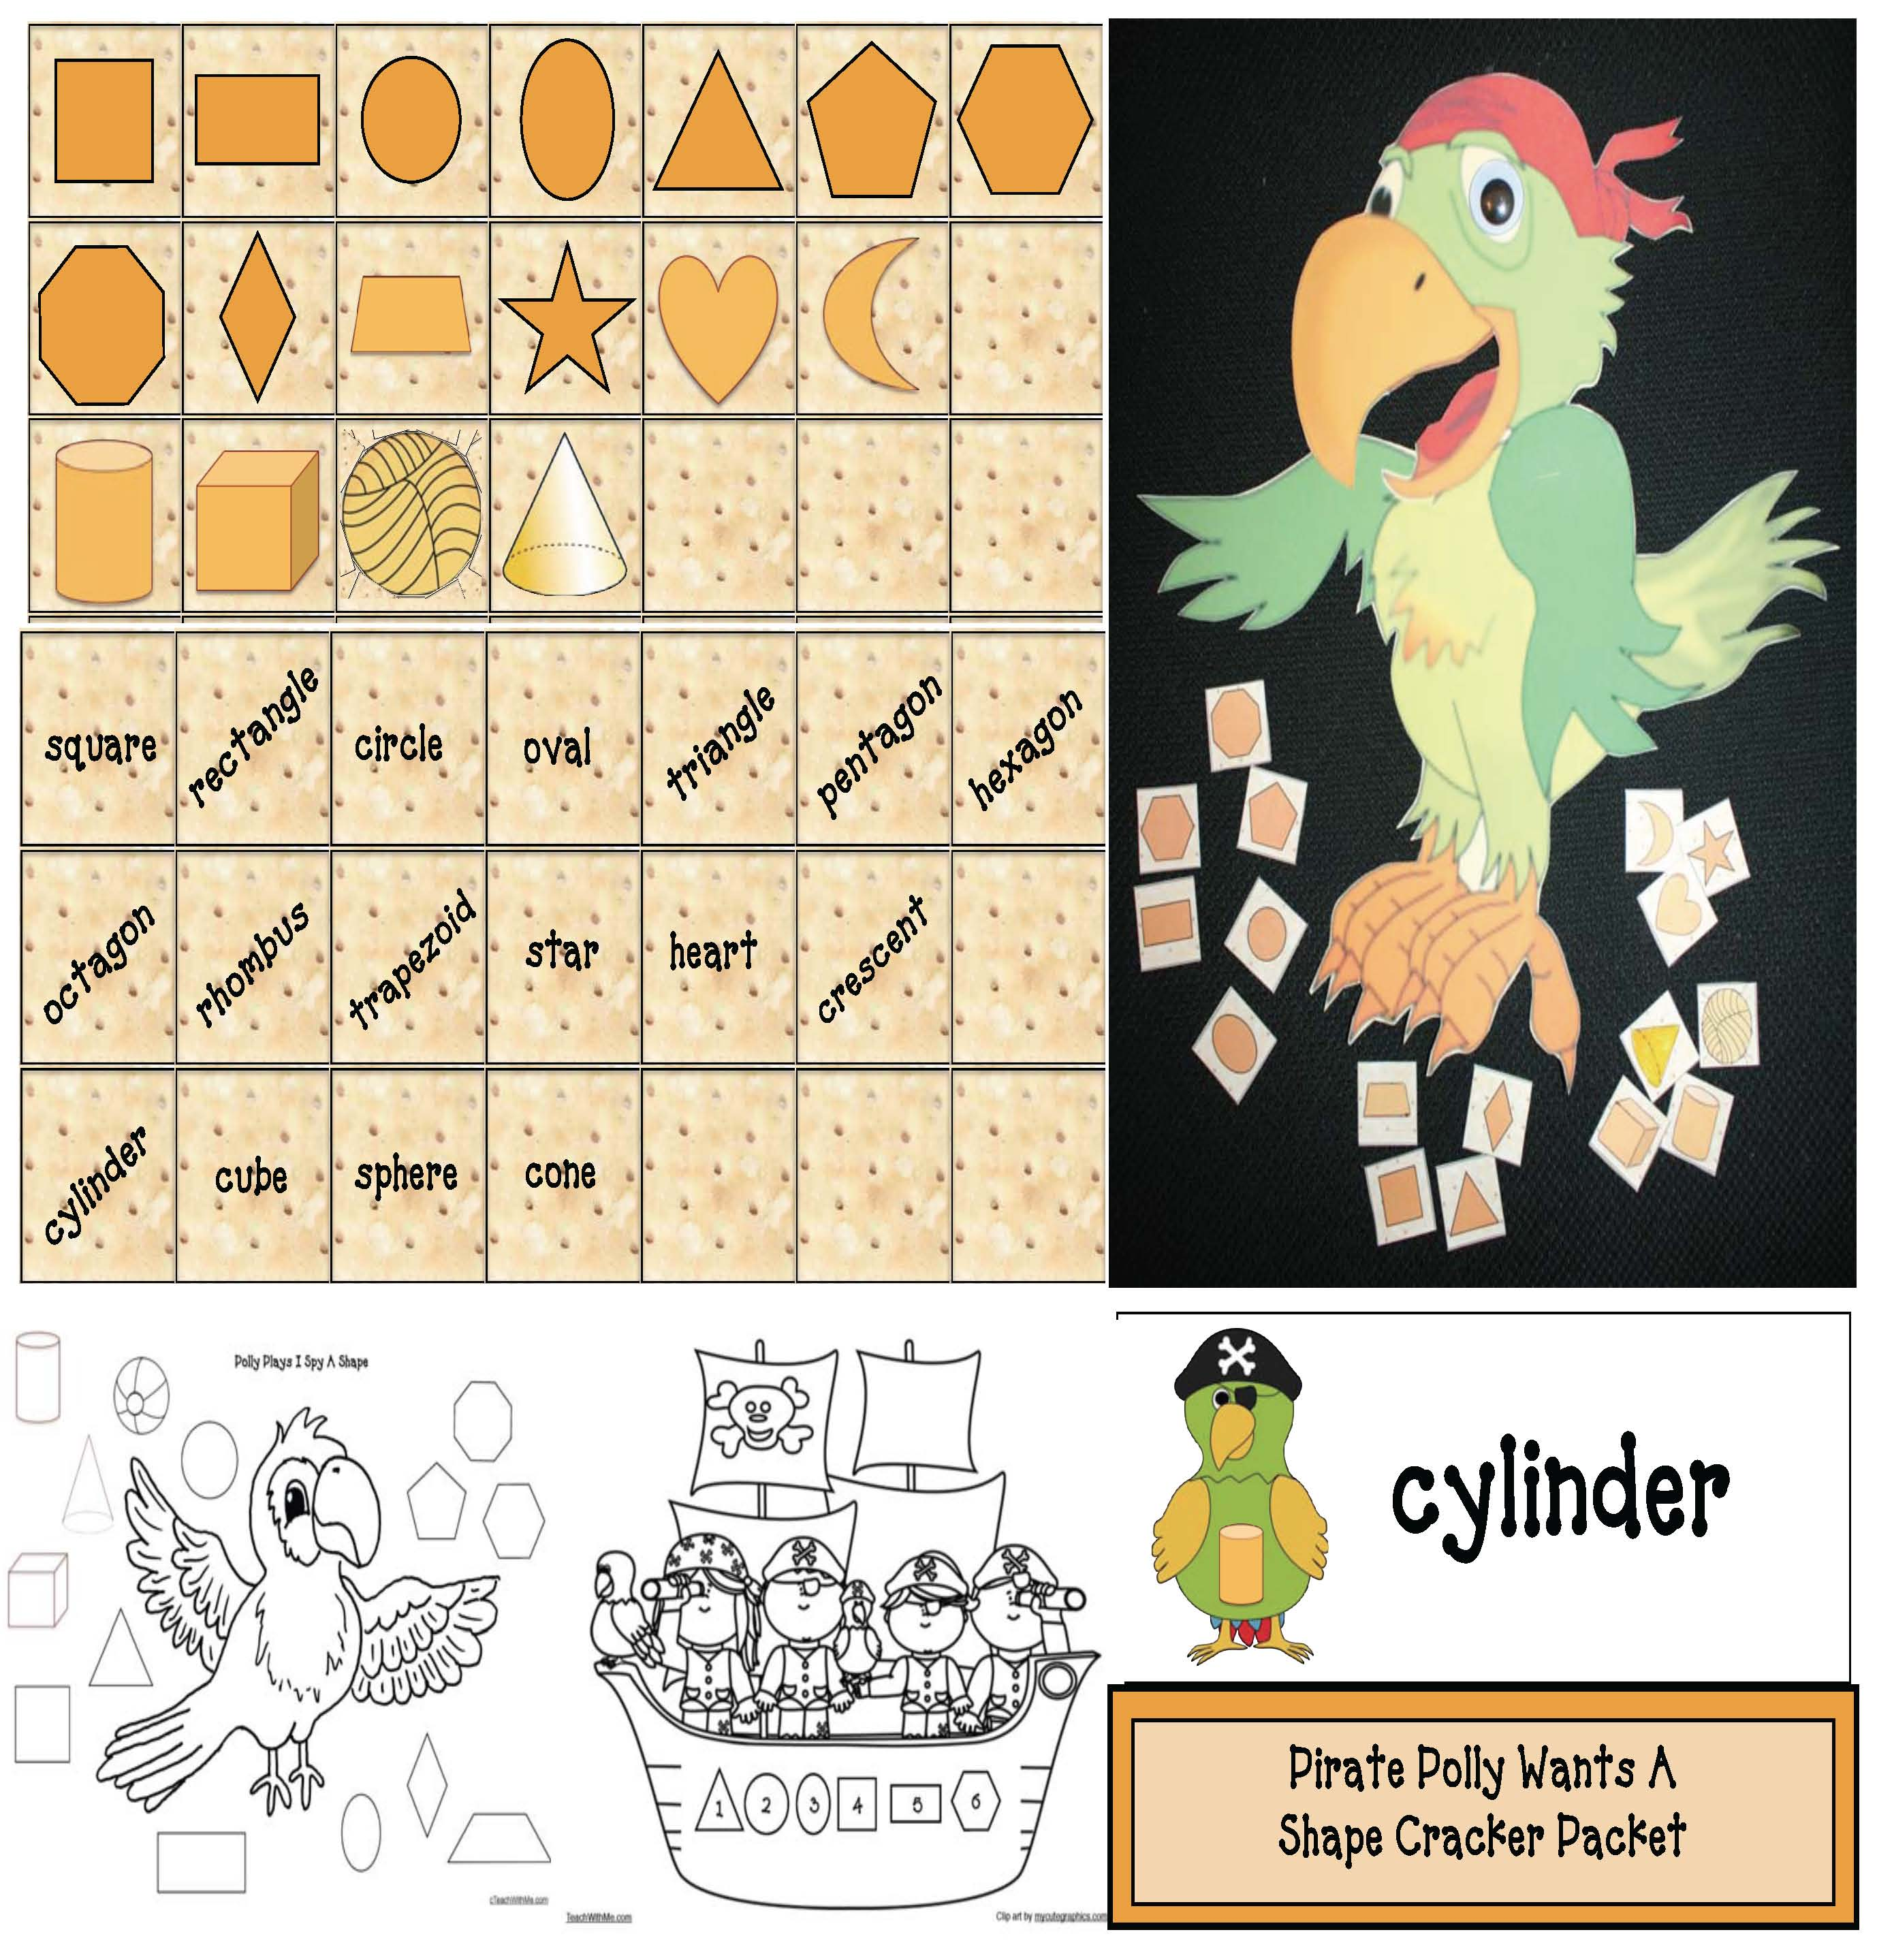 pirate activities, shape activities, alphabet activities, number games, shape games, shape crafts, number crafts, pirate crafts, skip counting activities, counting backwards activities, shape games, hexagon activities, pattern block activities, common core pirates, pirate crafts, pirate games,